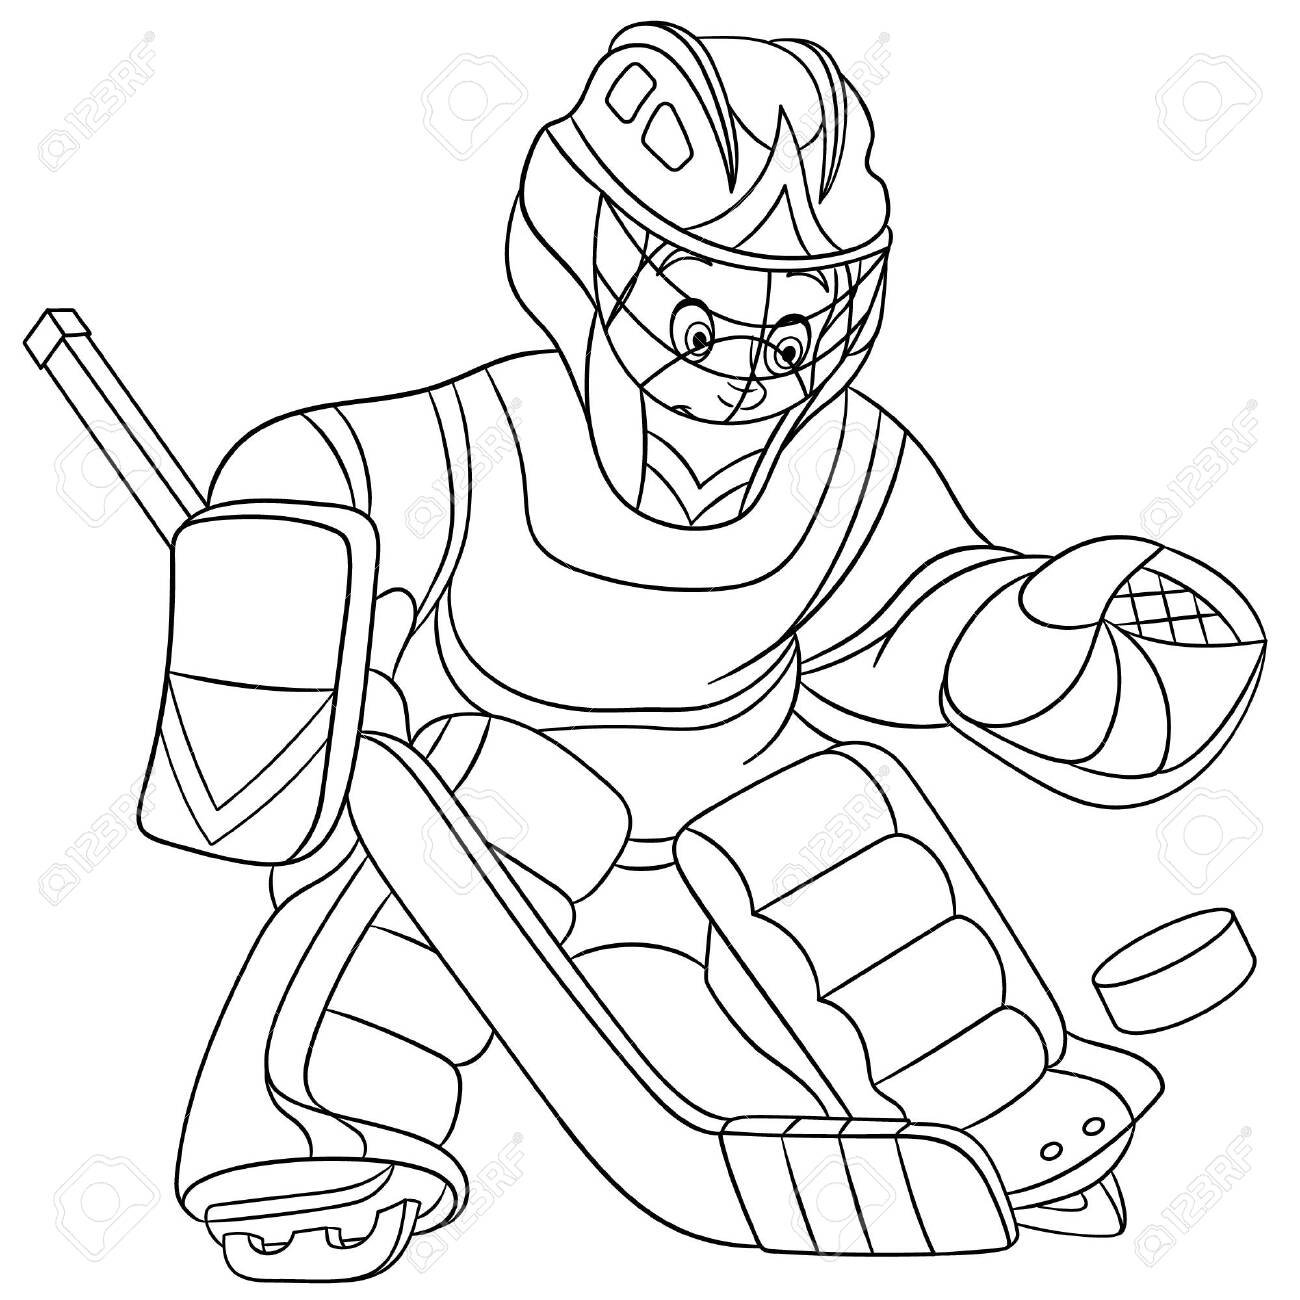 Hockey Coloring Pages For Kids Also Extraordinary Hockey Coloring ... | 1300x1300